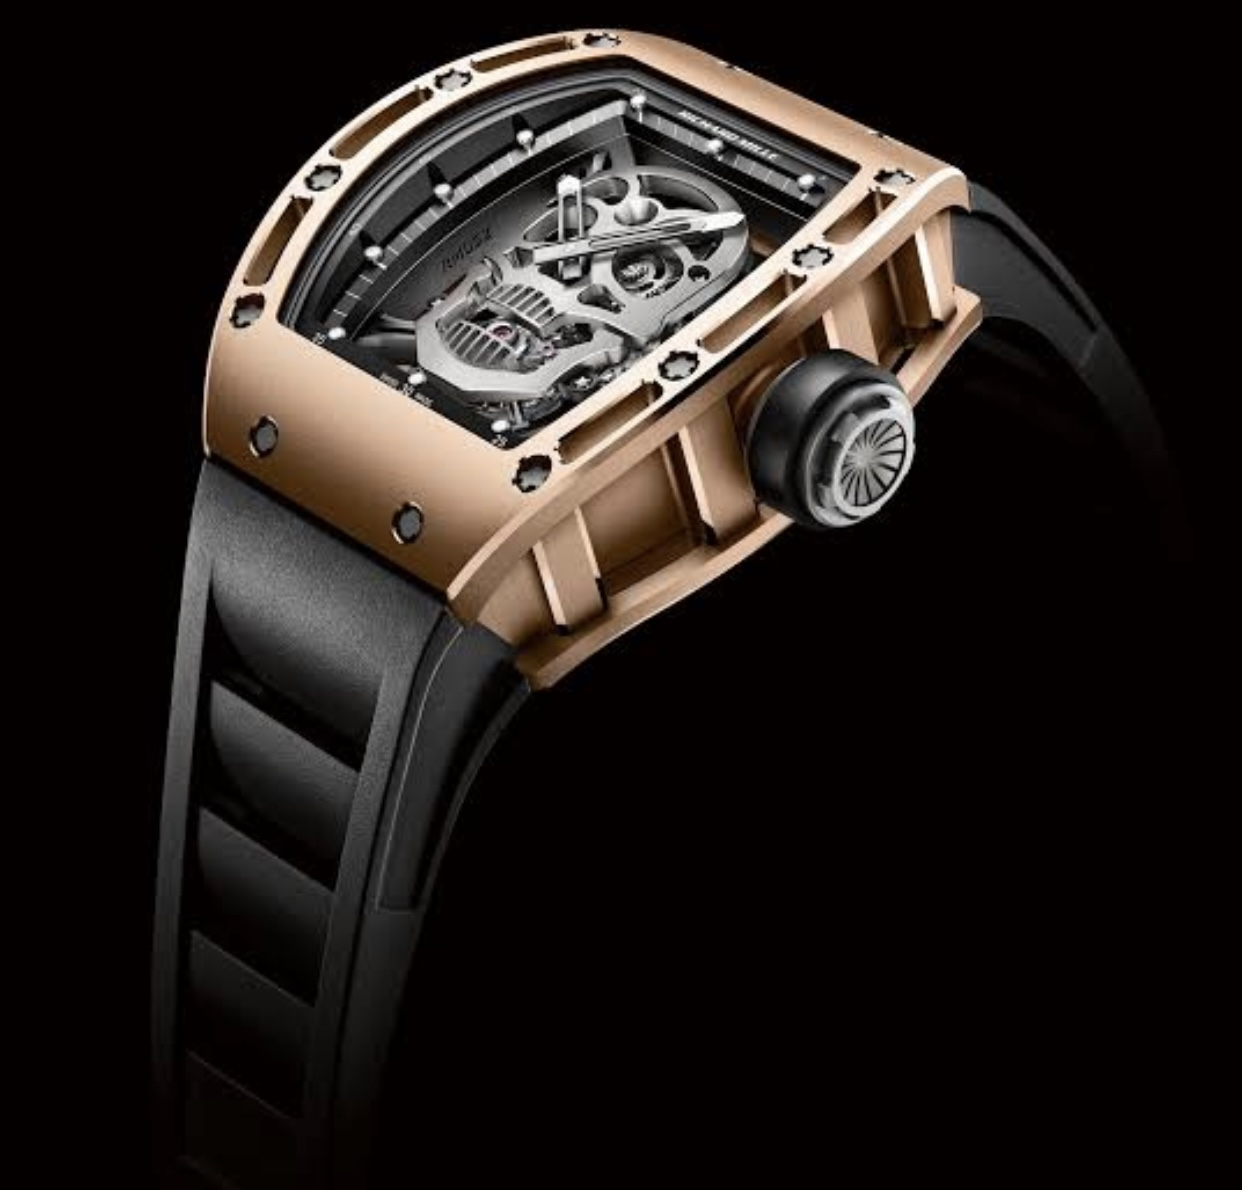 Richard Mille Rm 052 skull tourbillon rose gold watch